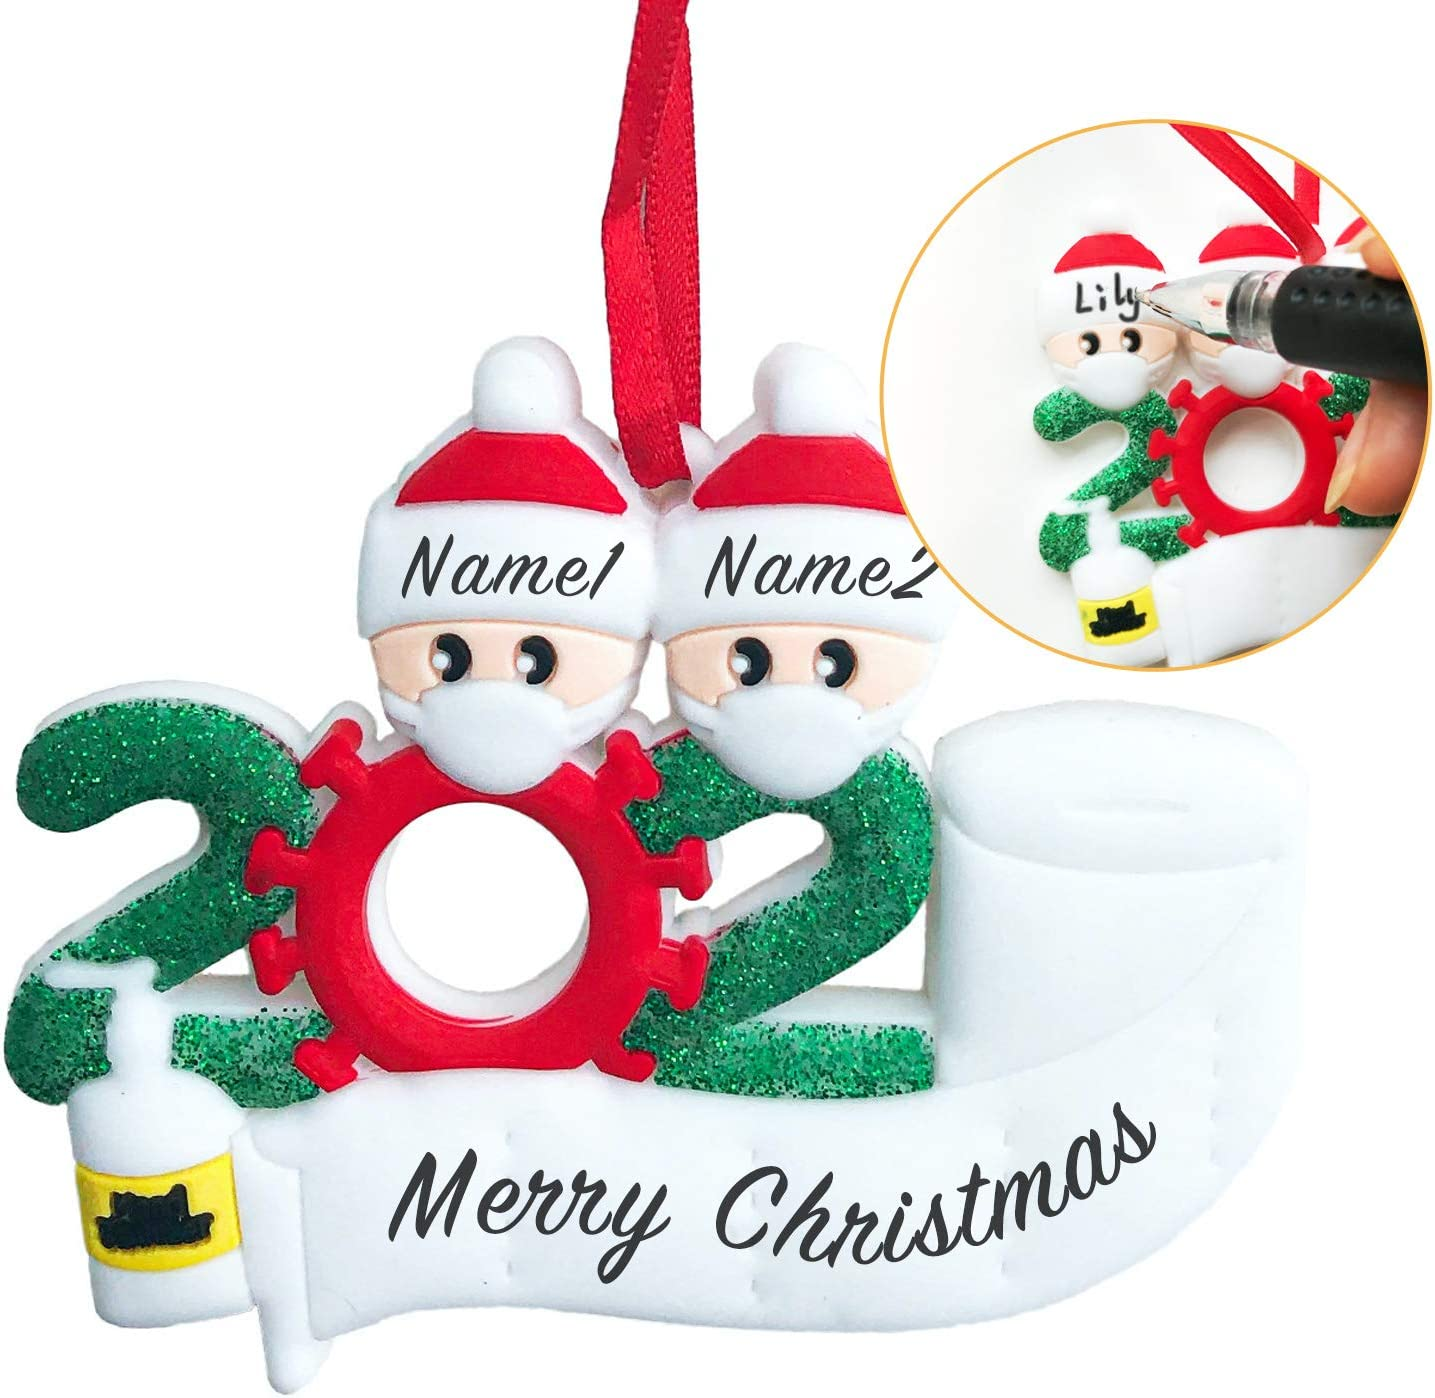 ZSXIN Personalized 2020 Christmas Ornament Ranking TOP3 Paper with Max 58% OFF Kit Toilet